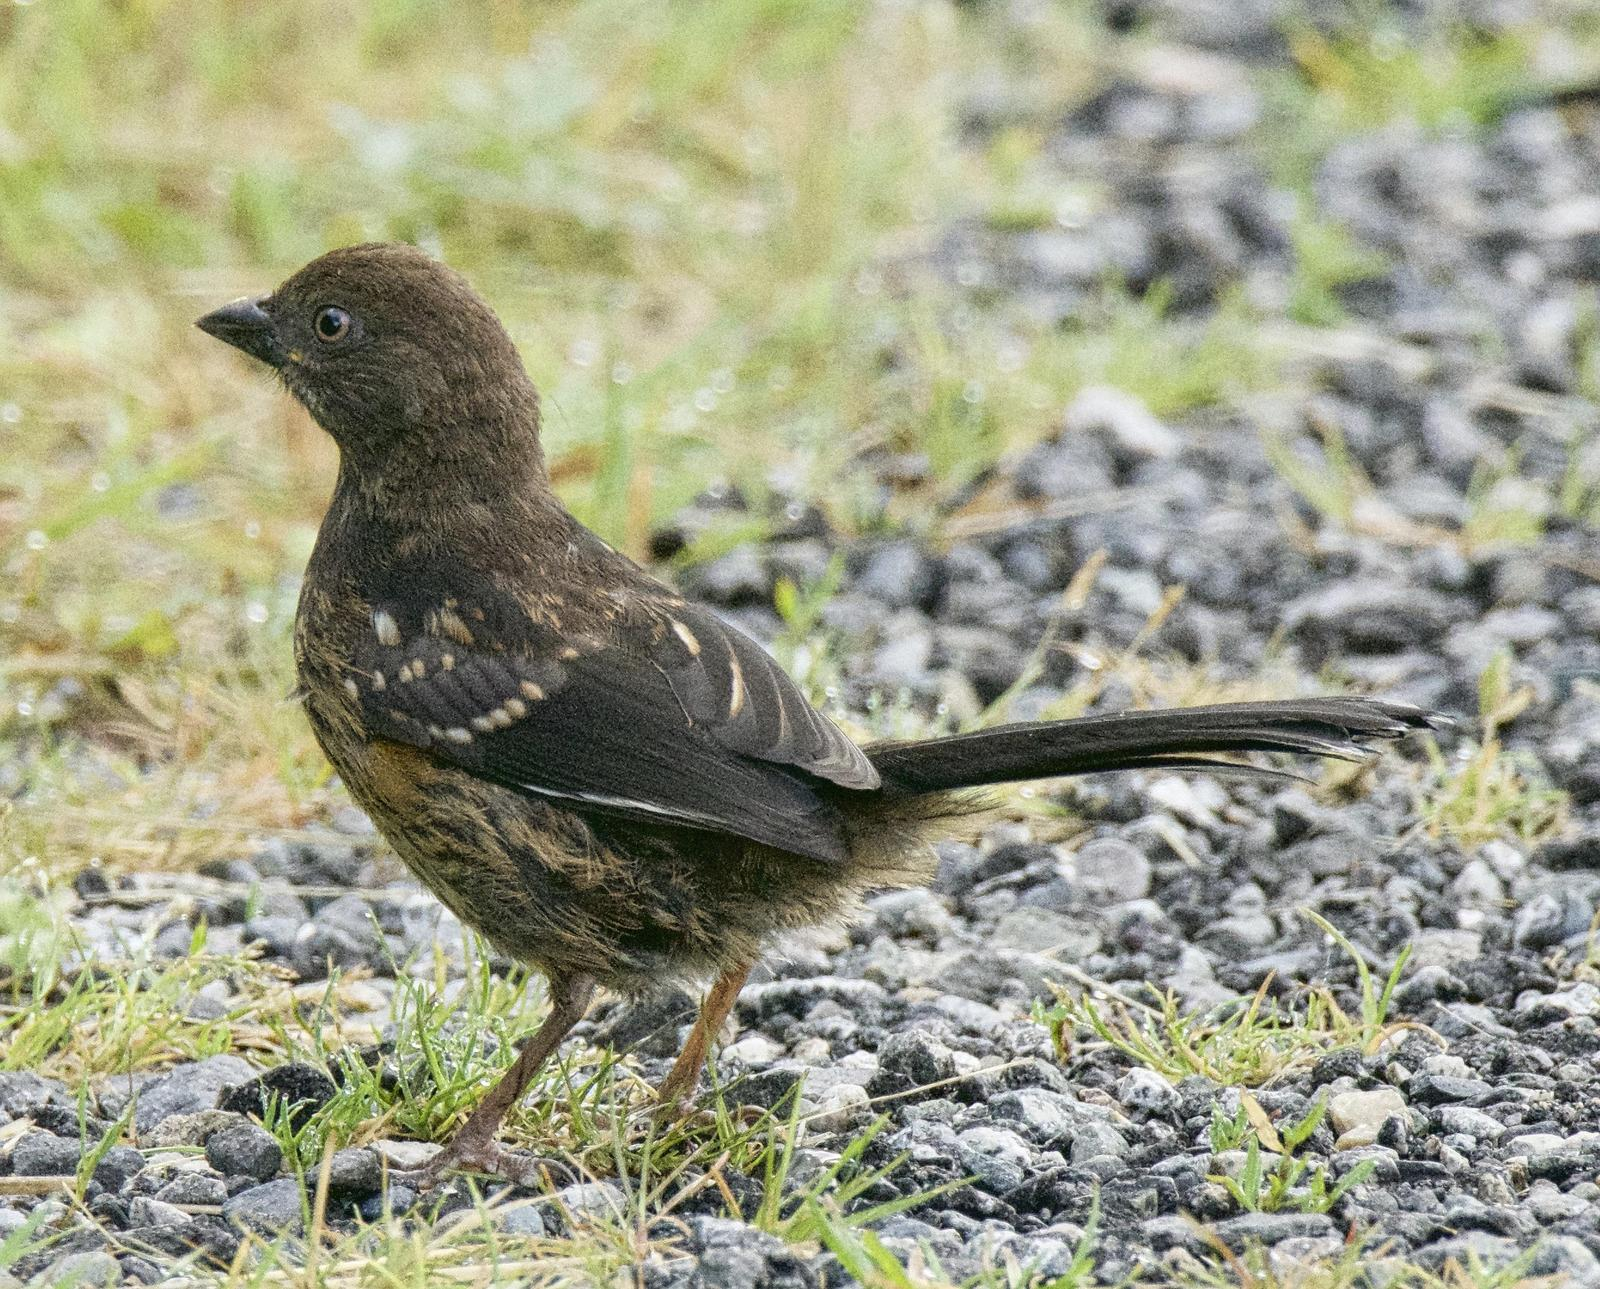 Spotted Towhee (oregonus Group) Photo by Brian Avent